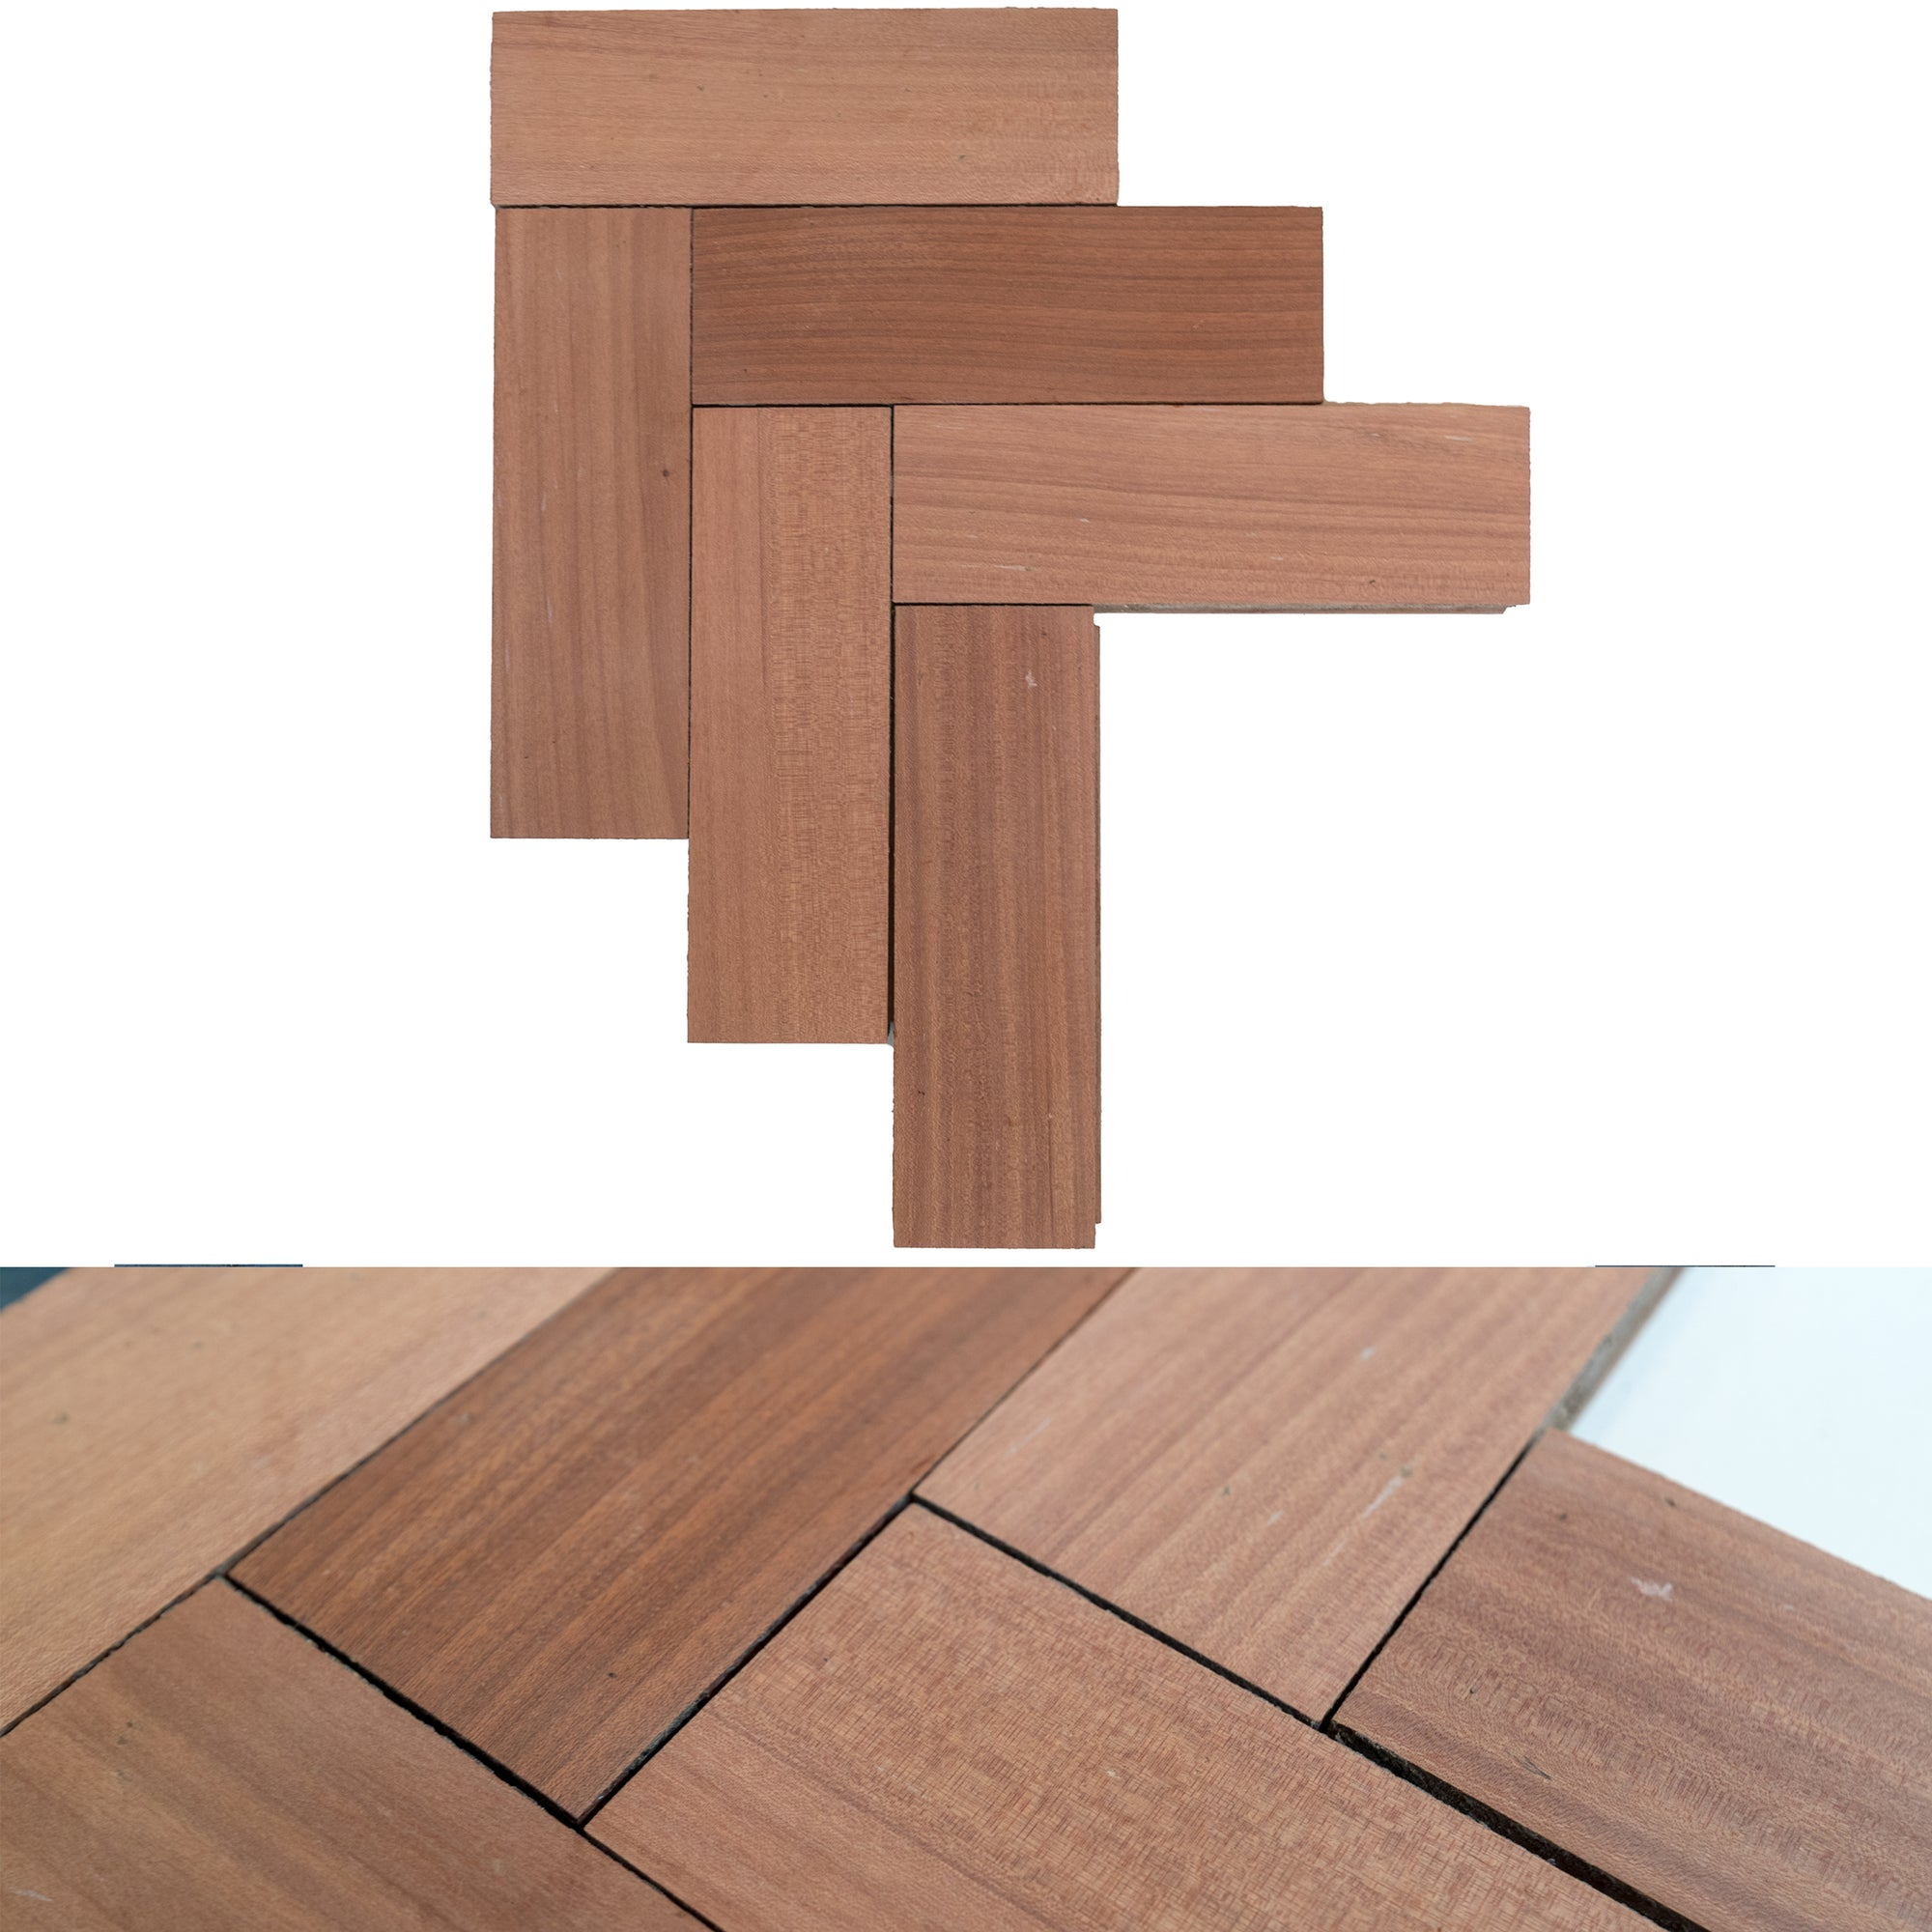 Reclaimed Sapele Parquet Flooring 178m² Available